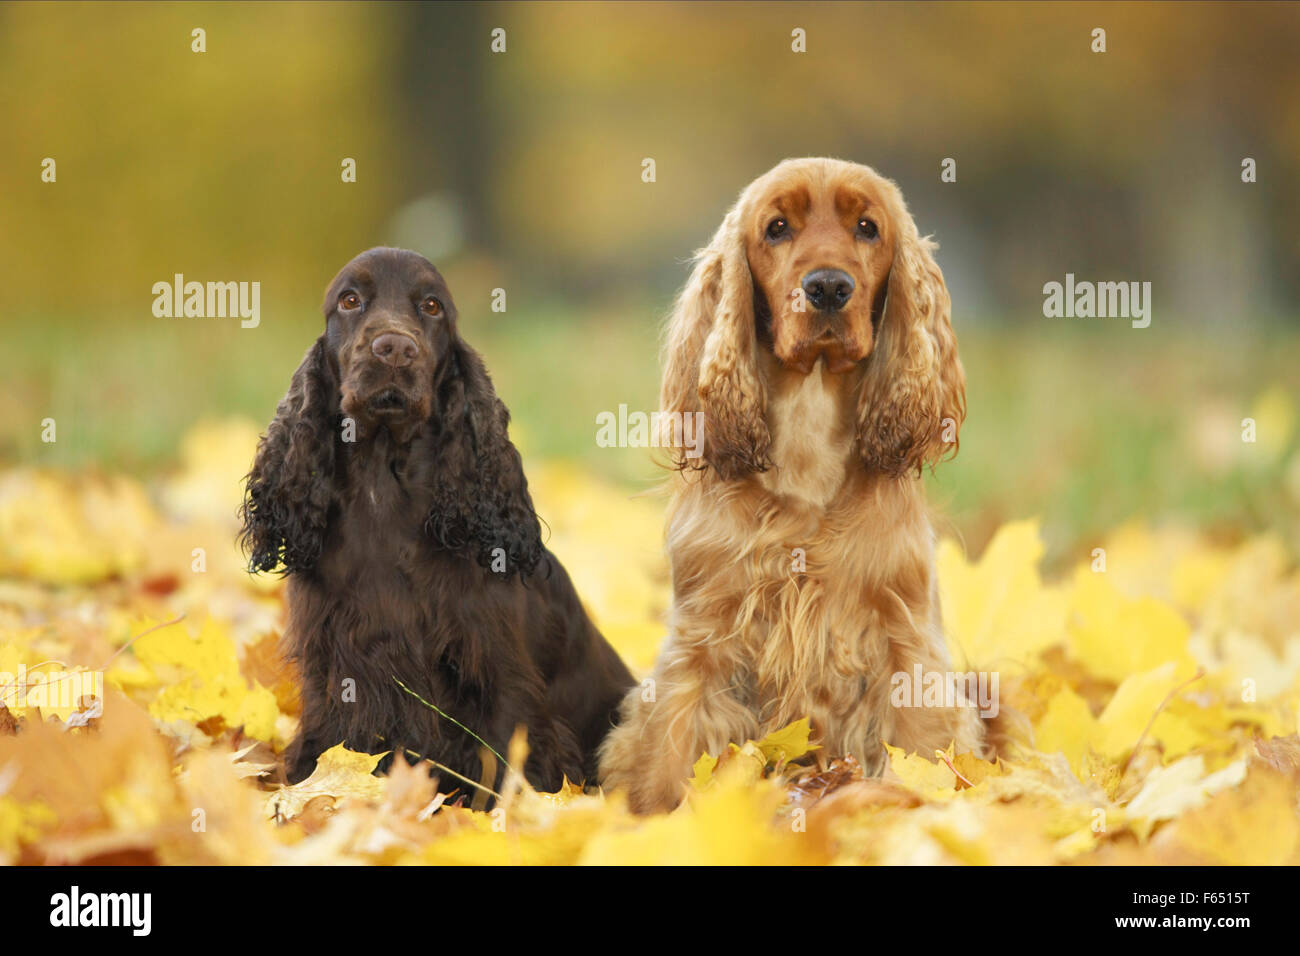 English Cocker Spaniel. Two adults sitting in autumn leaves. Germany - Stock Image